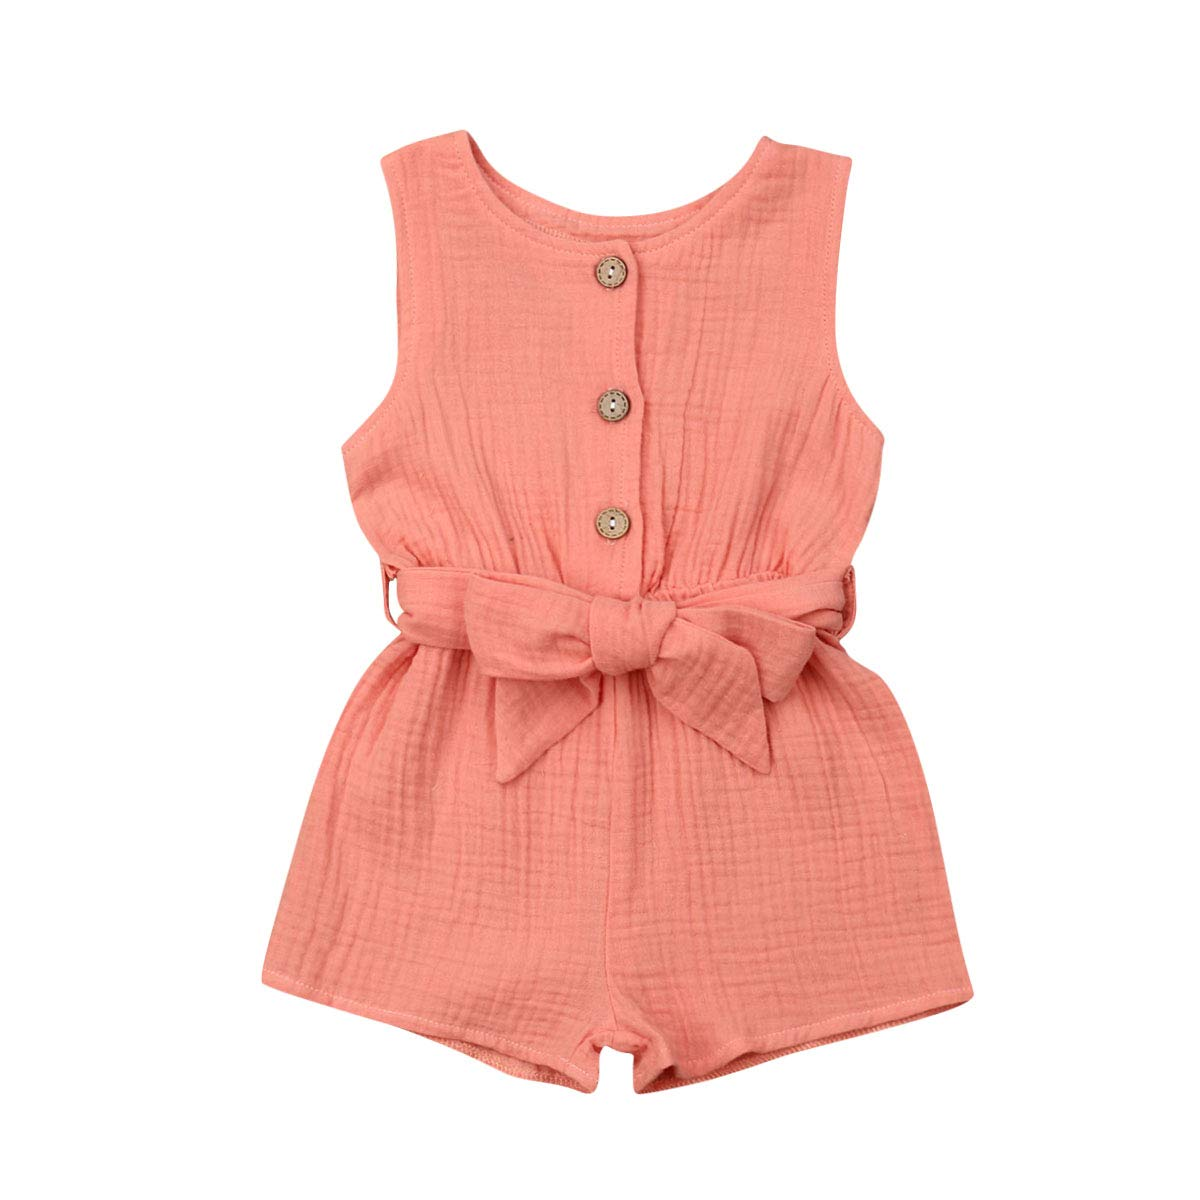 US Newborn Baby Girl Sleeveless Romper Bodysuit Jumpsuit Summer Outfits Clothes